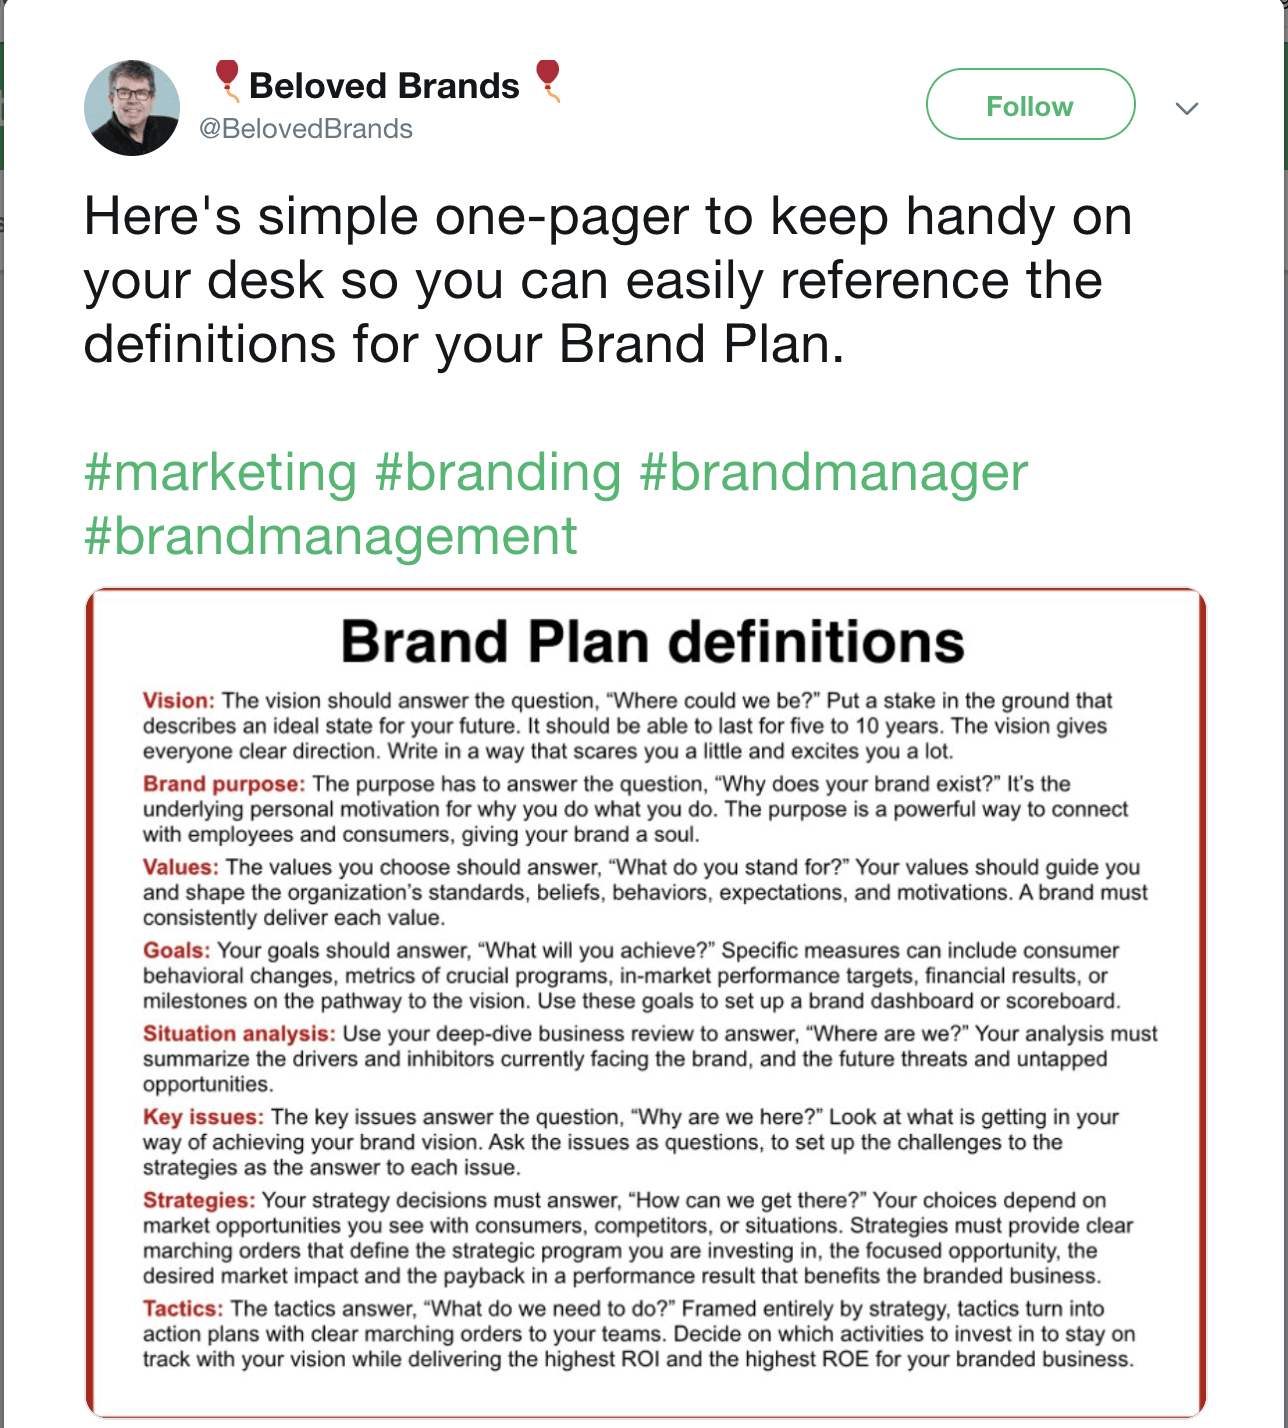 brand management definition beloved brands tweet